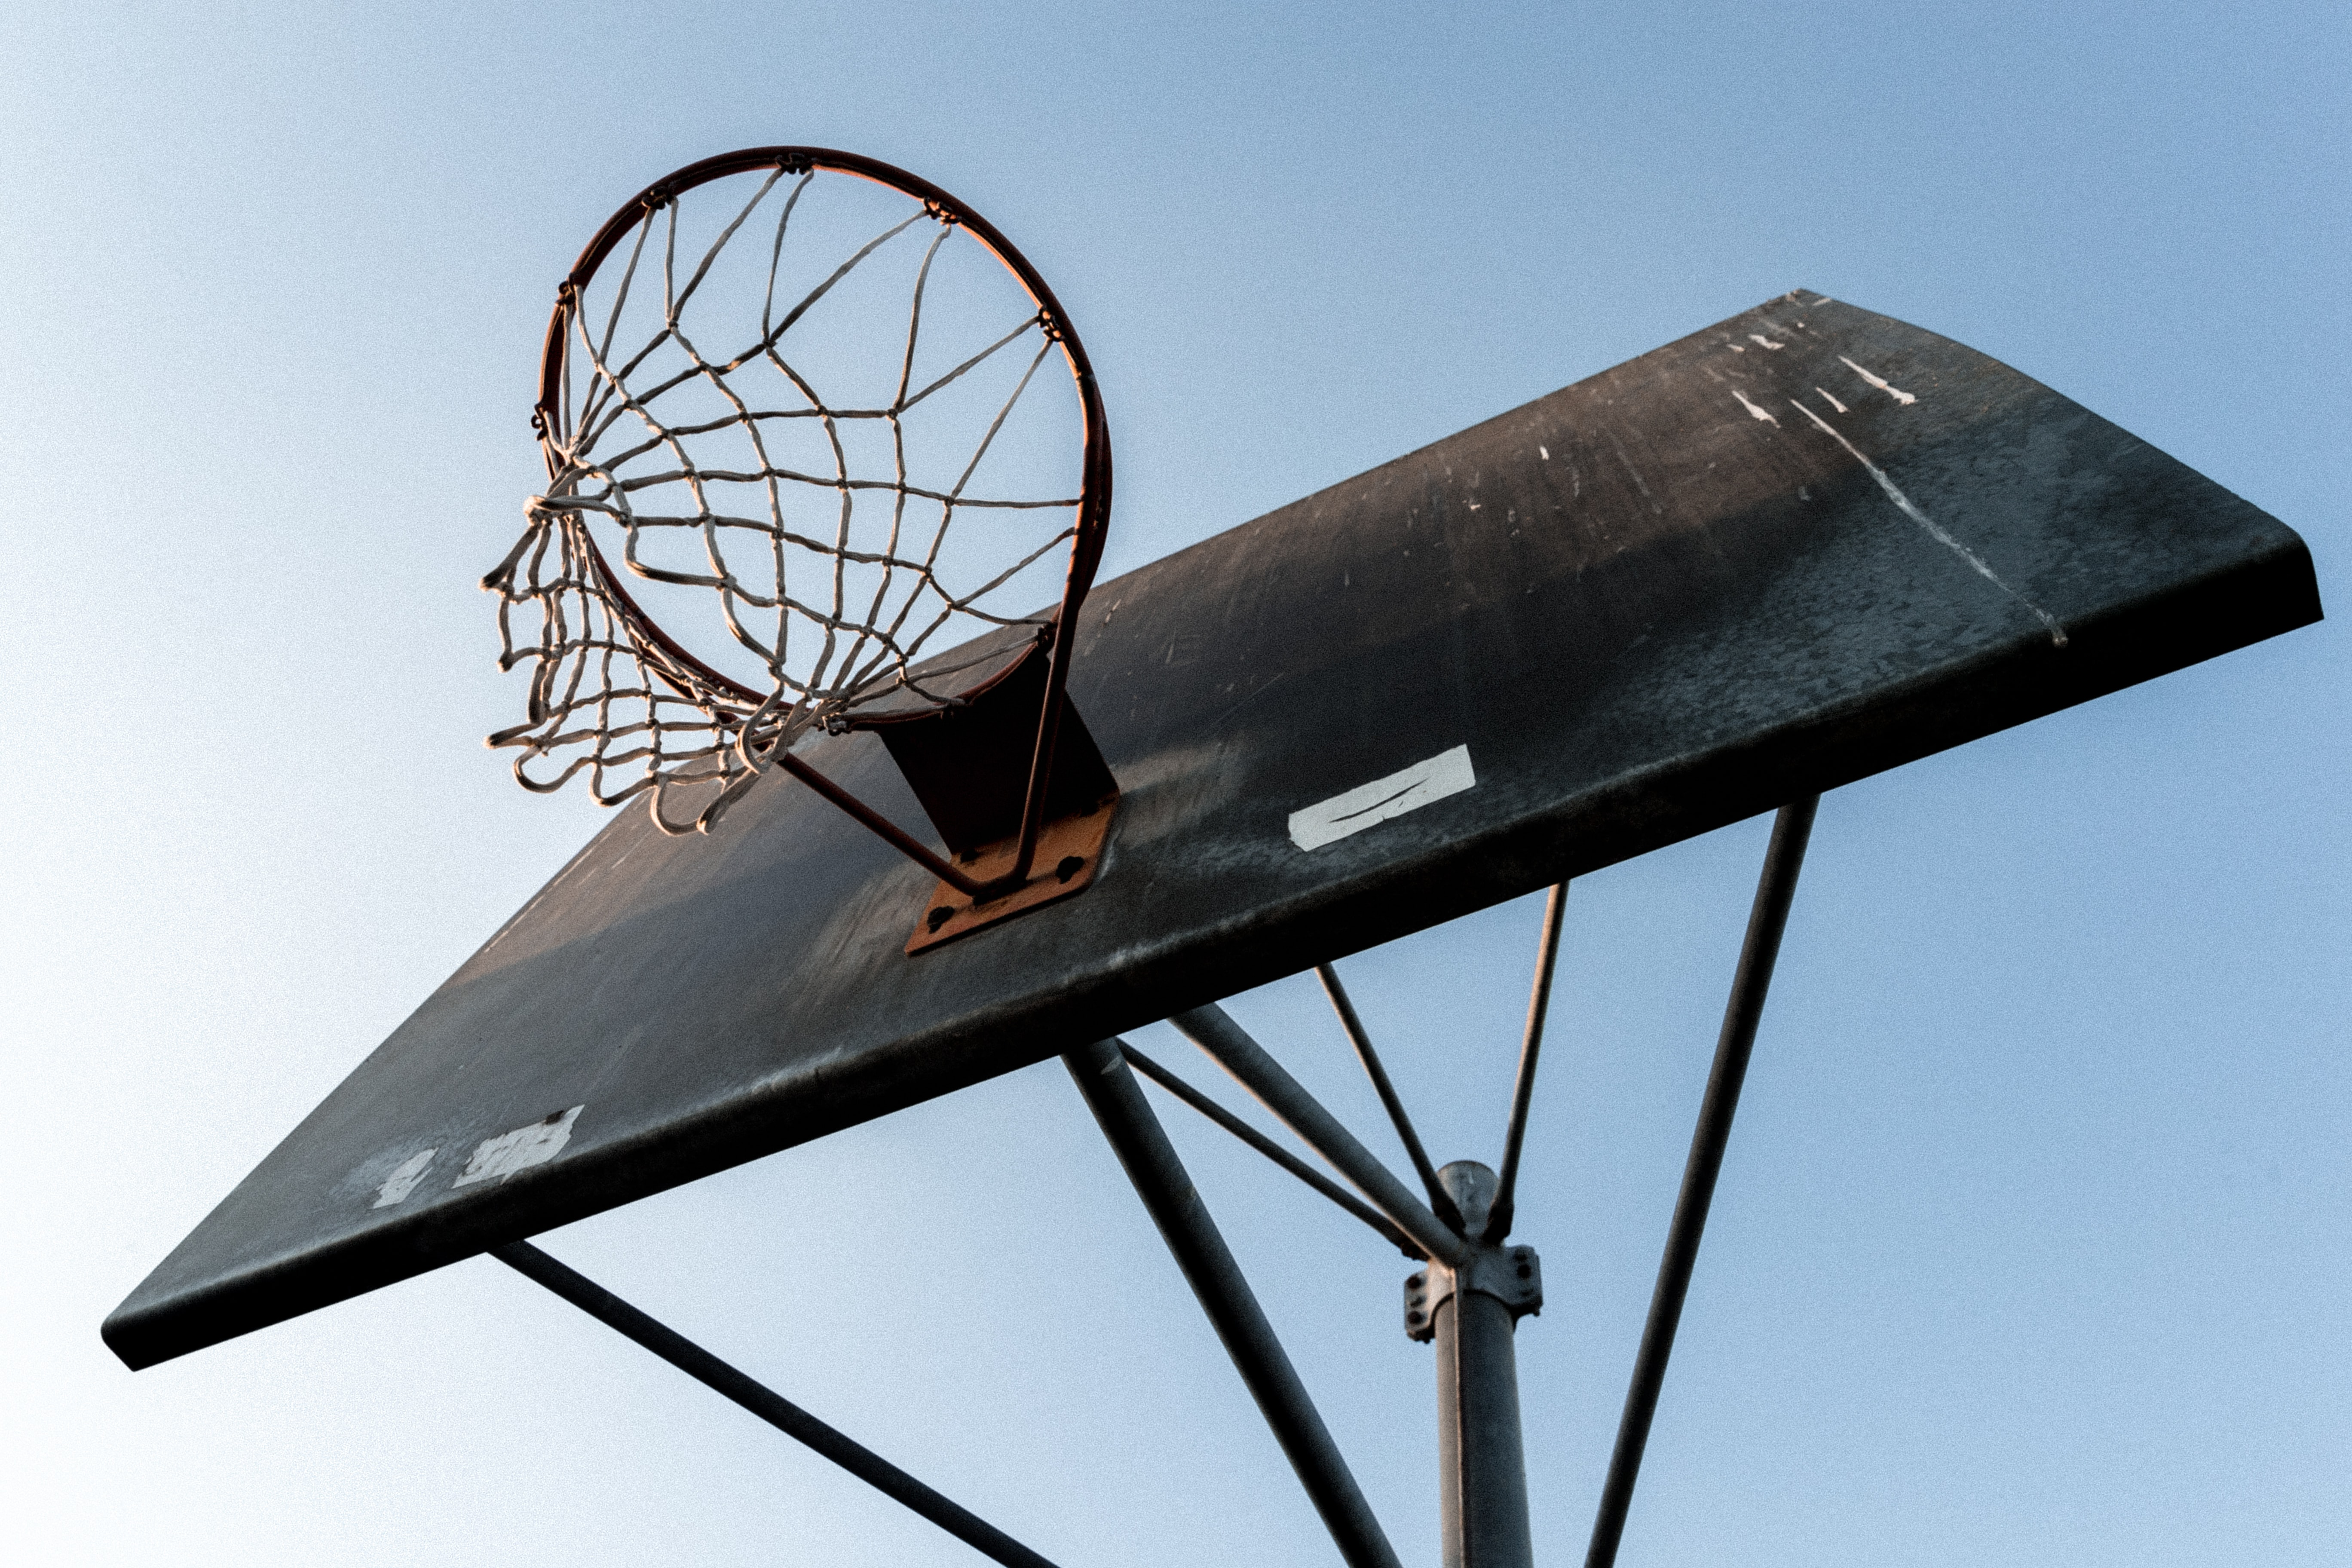 worm's eye view photography of basketball hoop